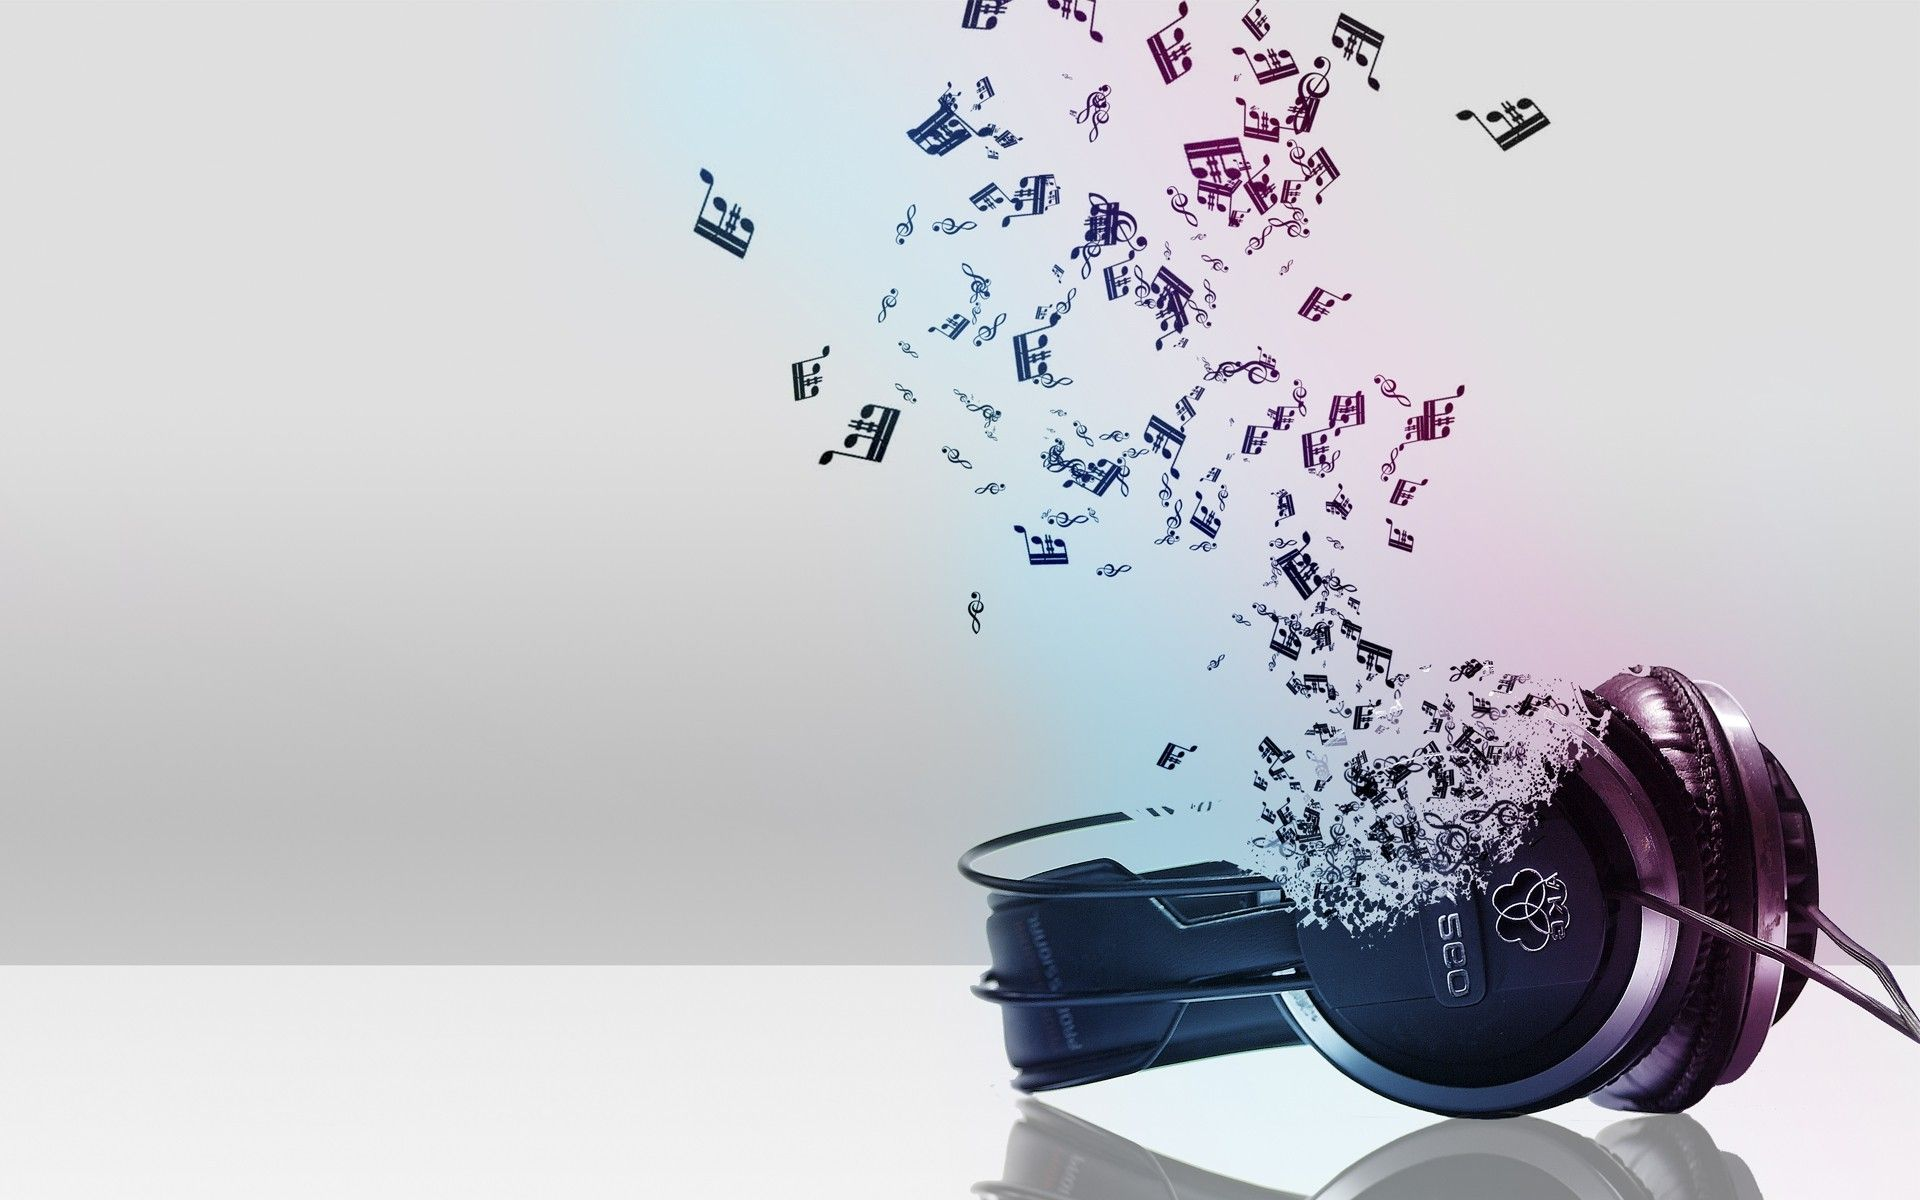 Headphones Music Notes: 3D Headphone Music Notes Wallpaper